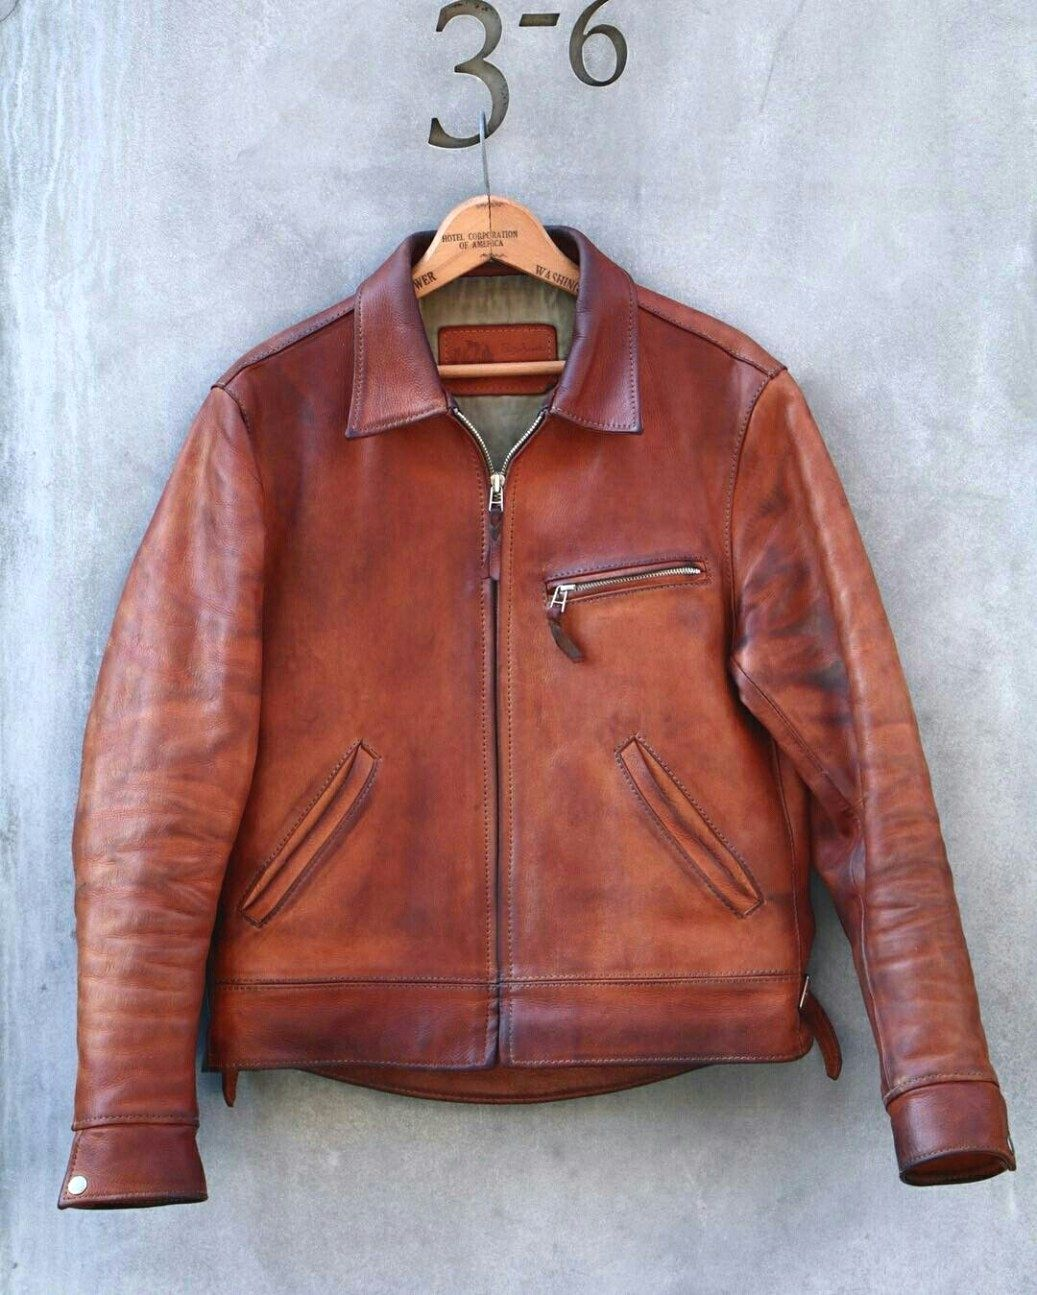 5e690d21a Mens Leather And Fabric Jackets. winter jacket sale. | Jackets men's ...